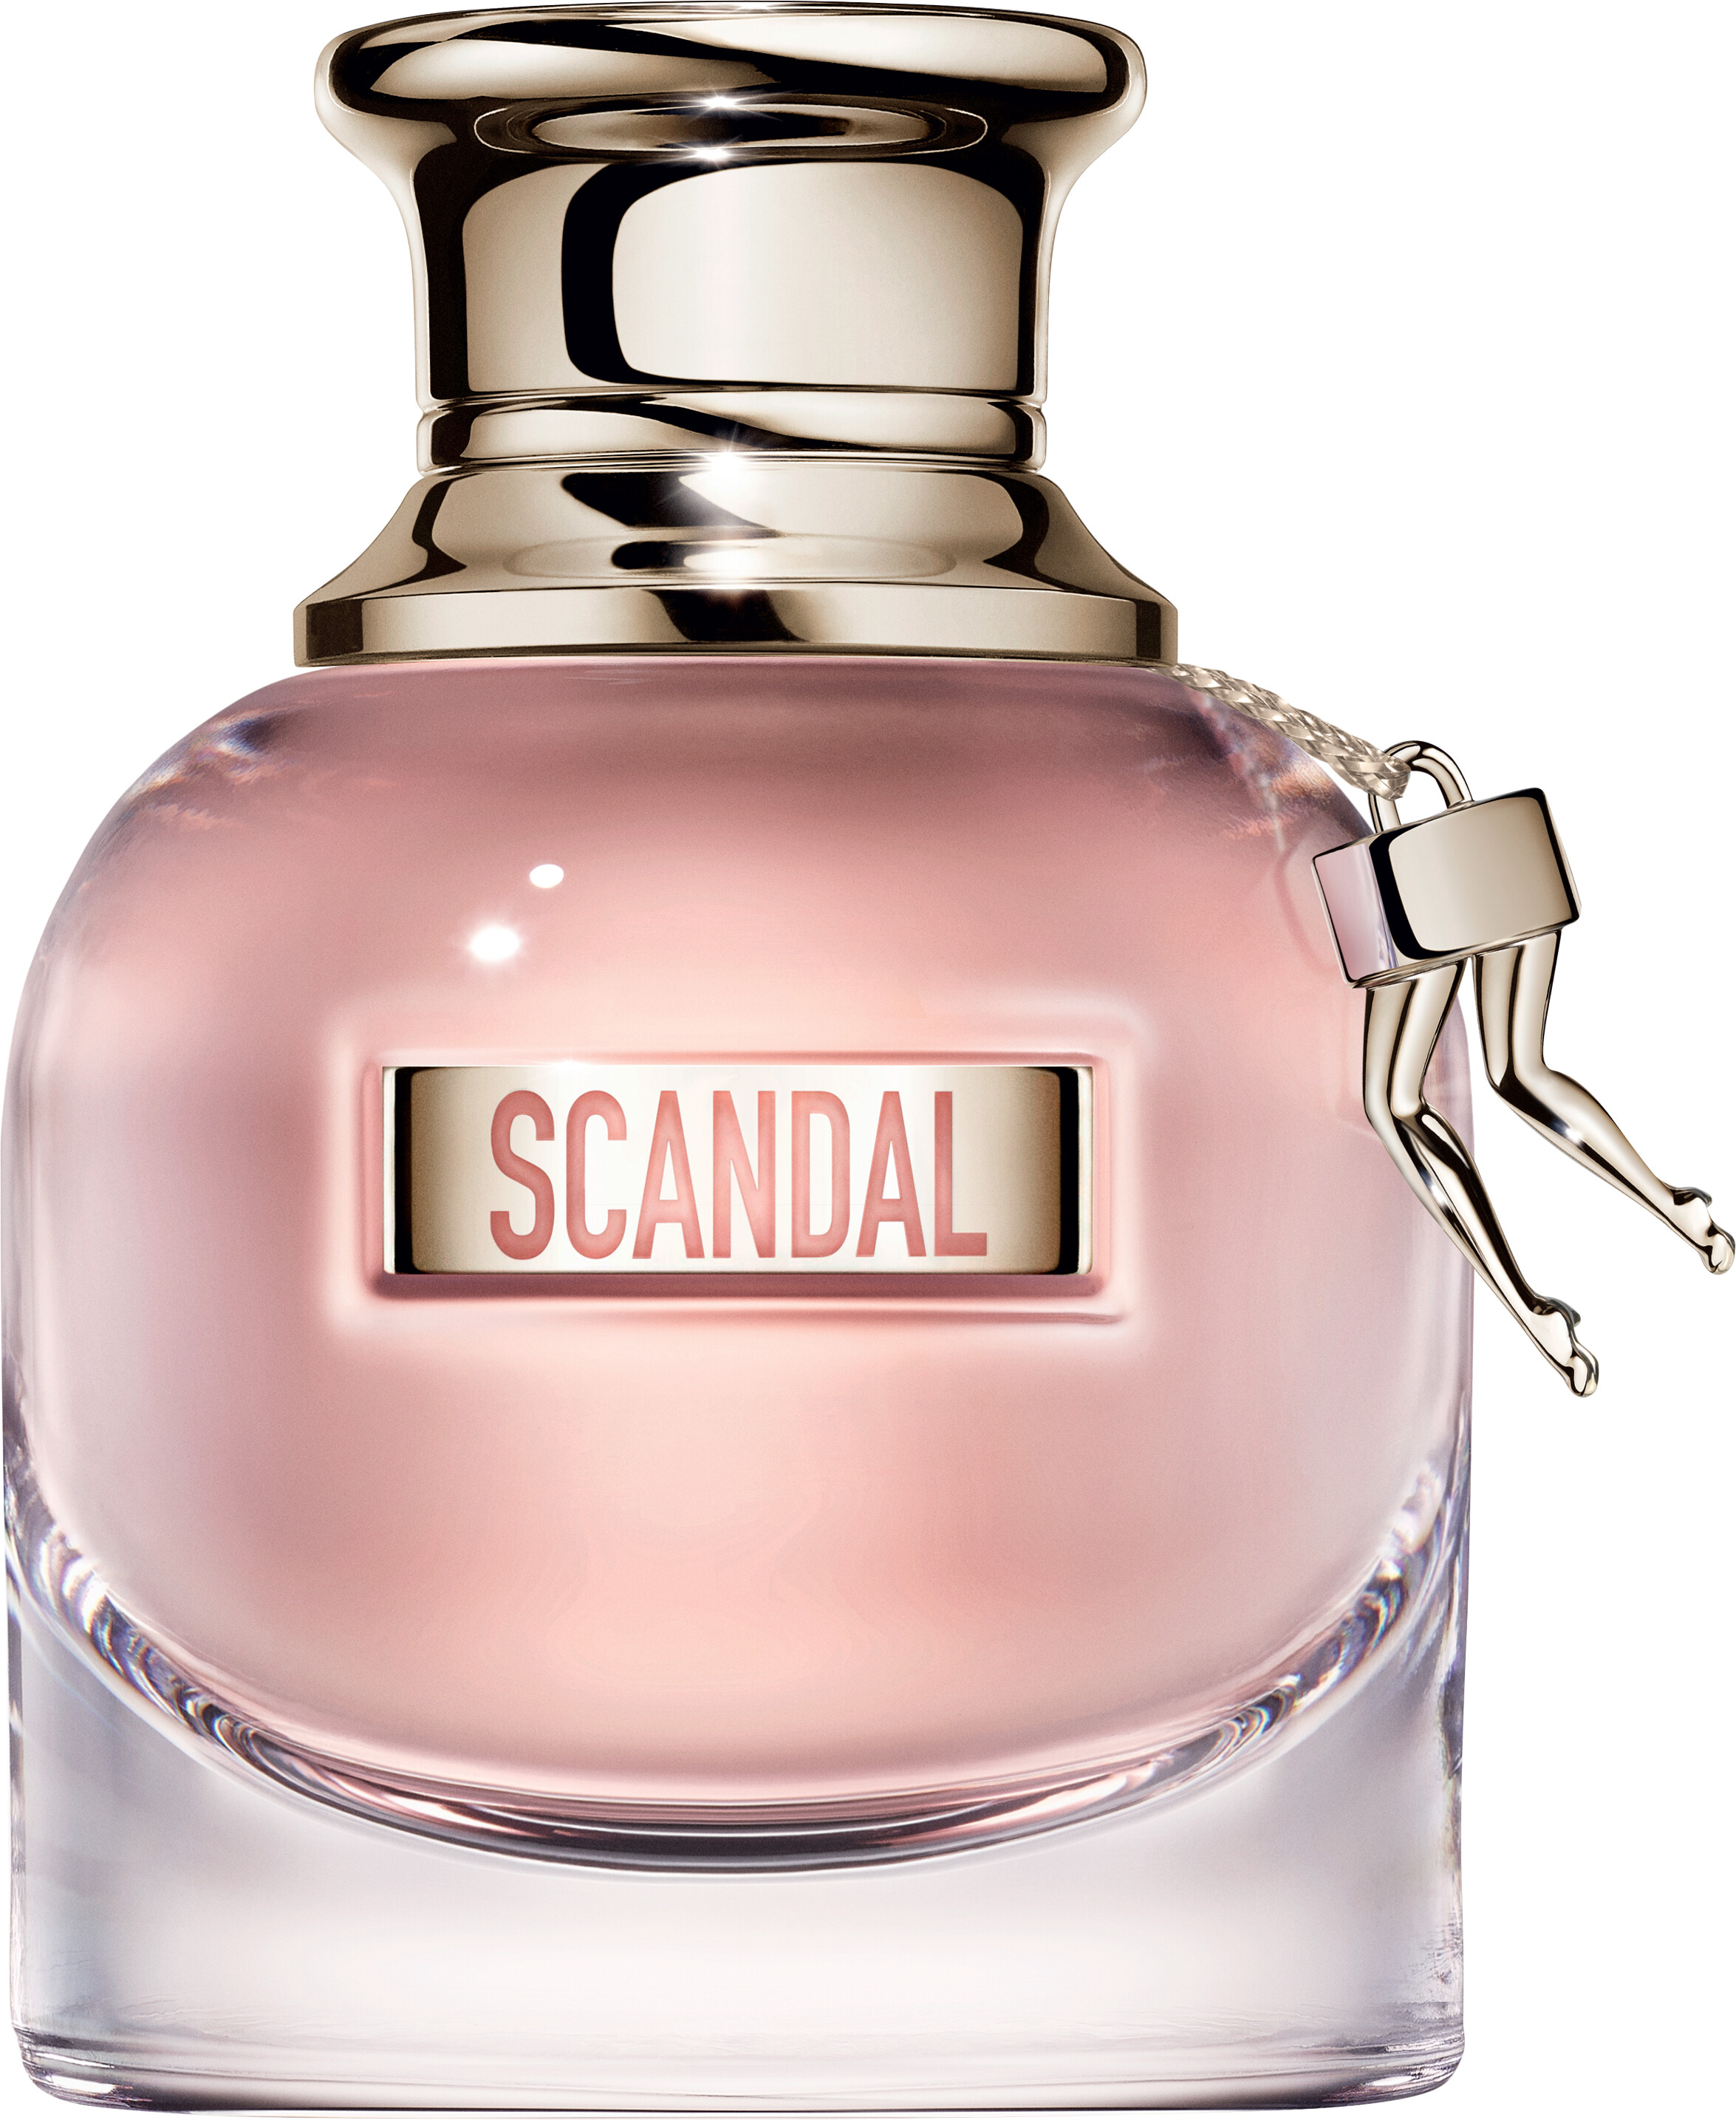 jean paul gaultier scandal eau de parfum spray